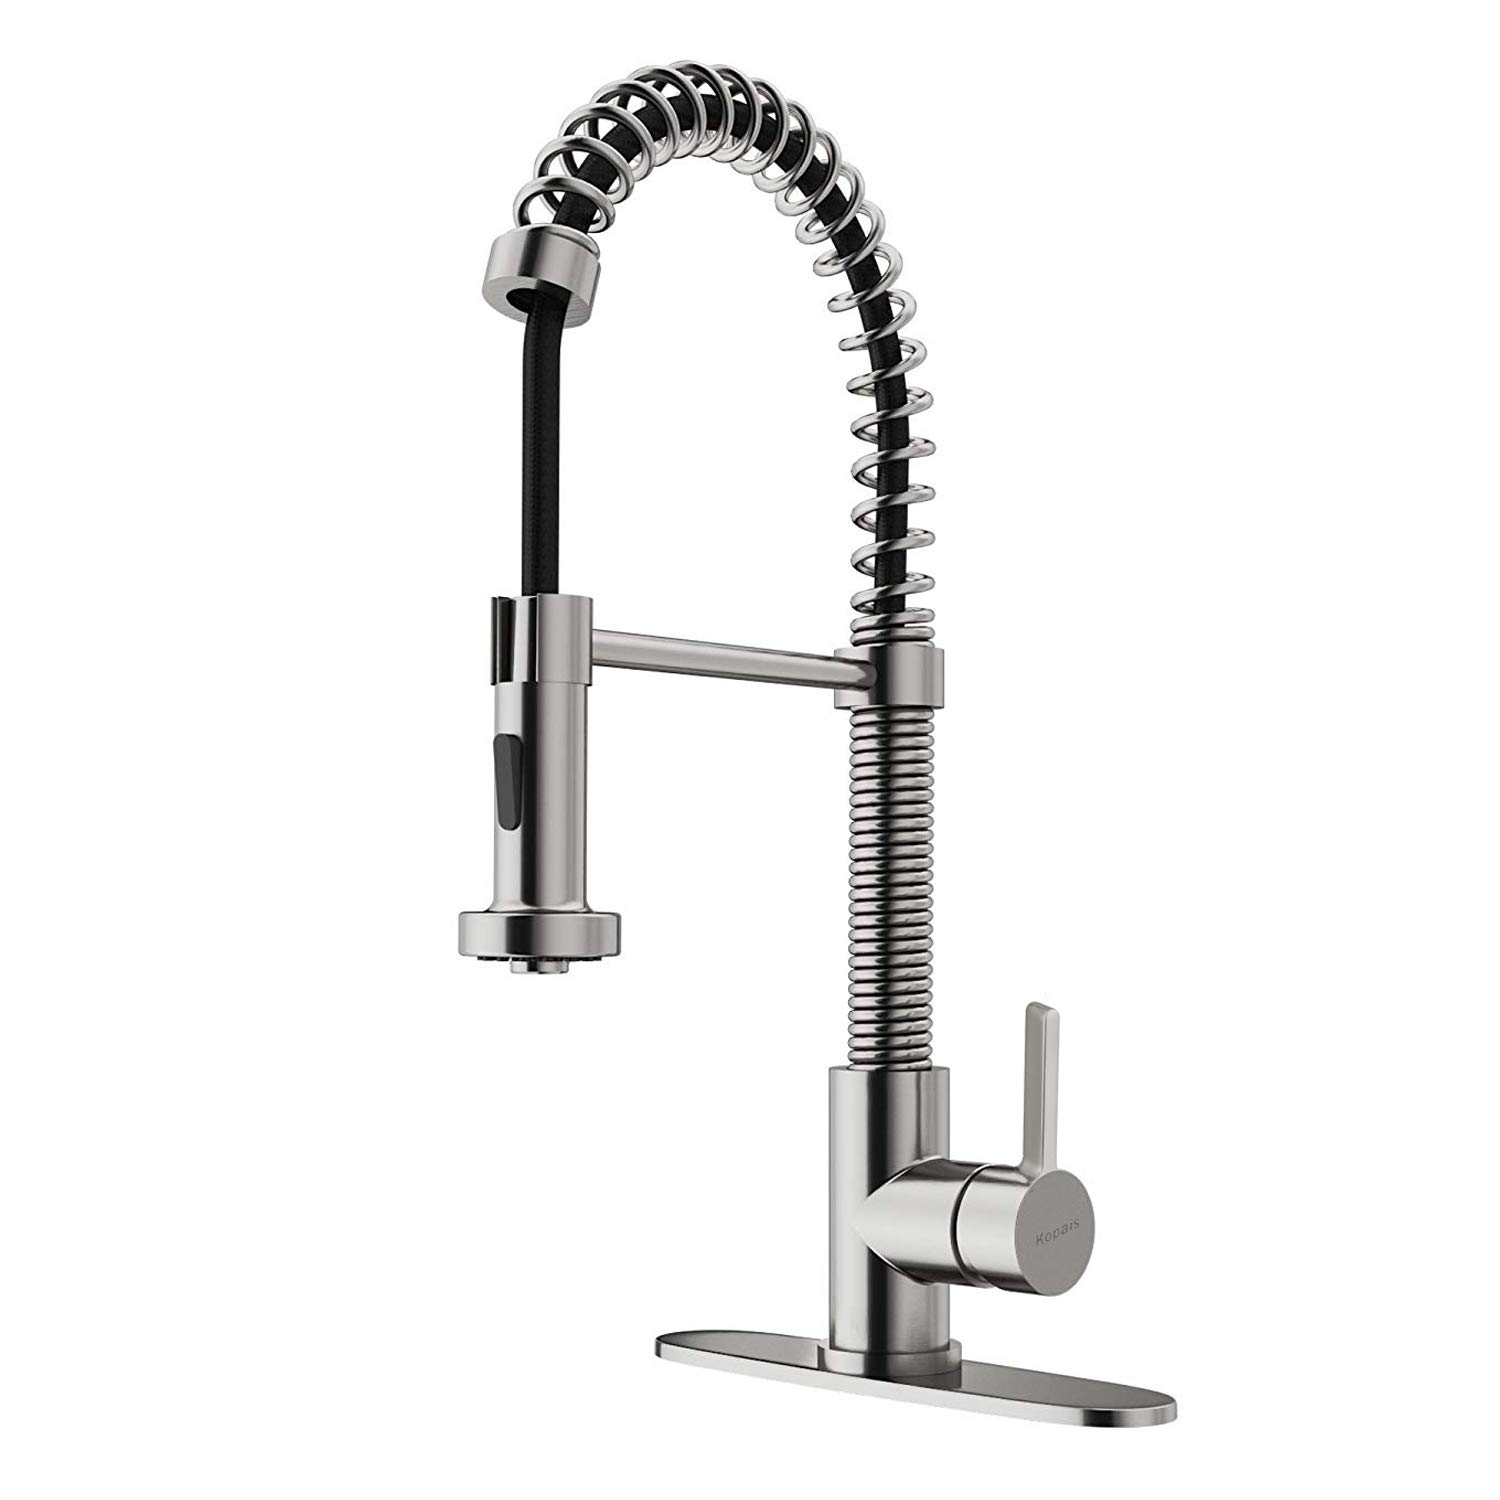 cUPC Commercial Stainless Steel Kitchen Faucet with Pull Down Sprayer, Single Handle High Arc Spring Kitchen Sink Faucet, Single lever Brushed Nickel kitchen faucet 1 or 3 holes with Deck Plated